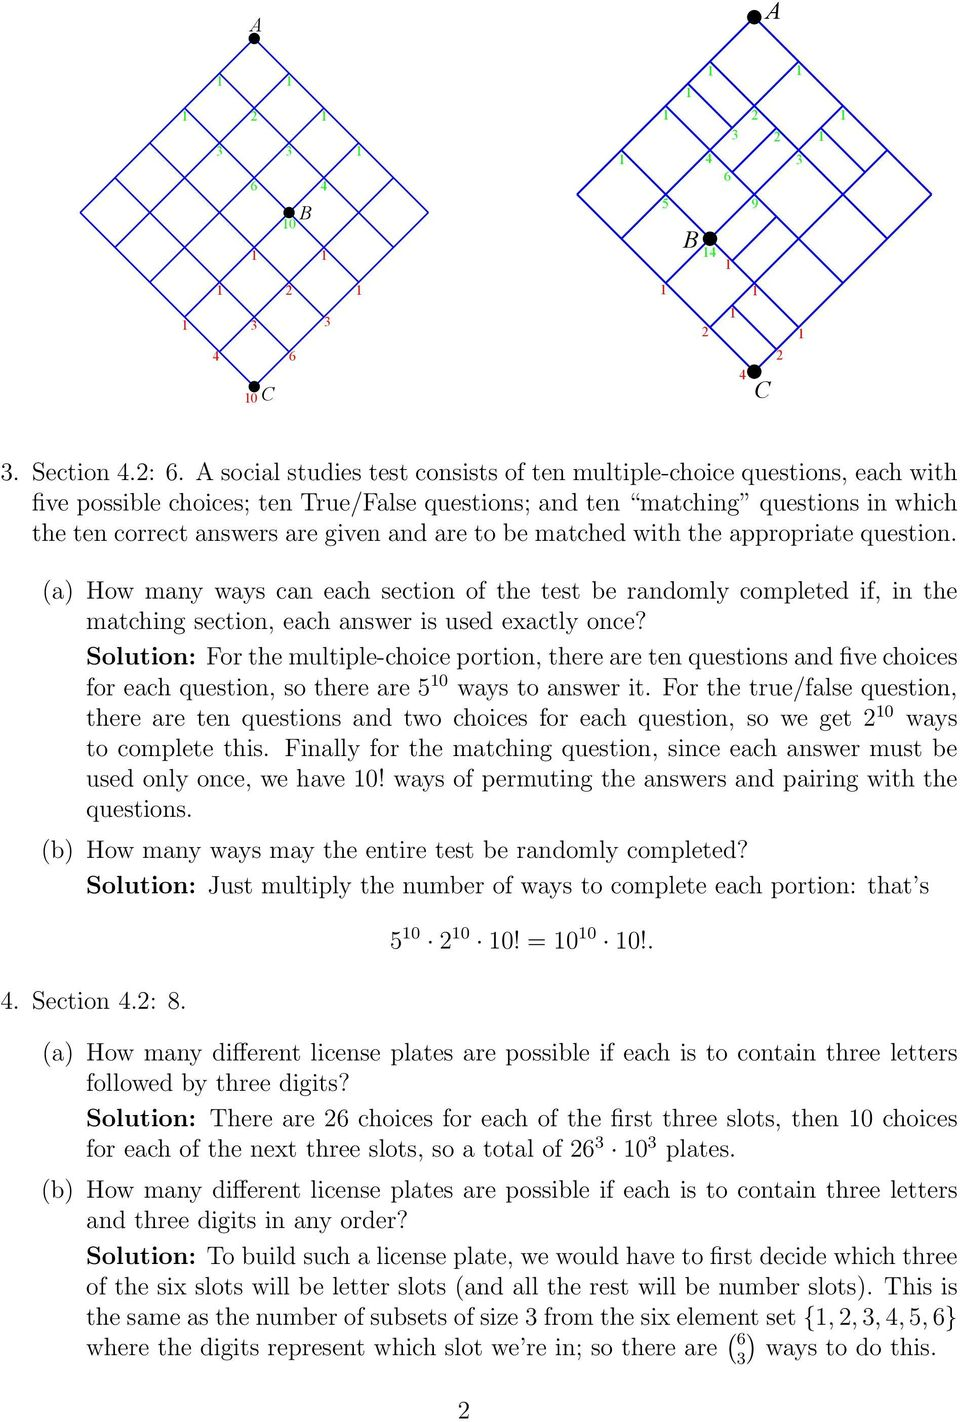 to be matched with the appropriate question. (a) How many ways can each section of the test be randomly completed if, in the matching section, each answer is used exactly once?